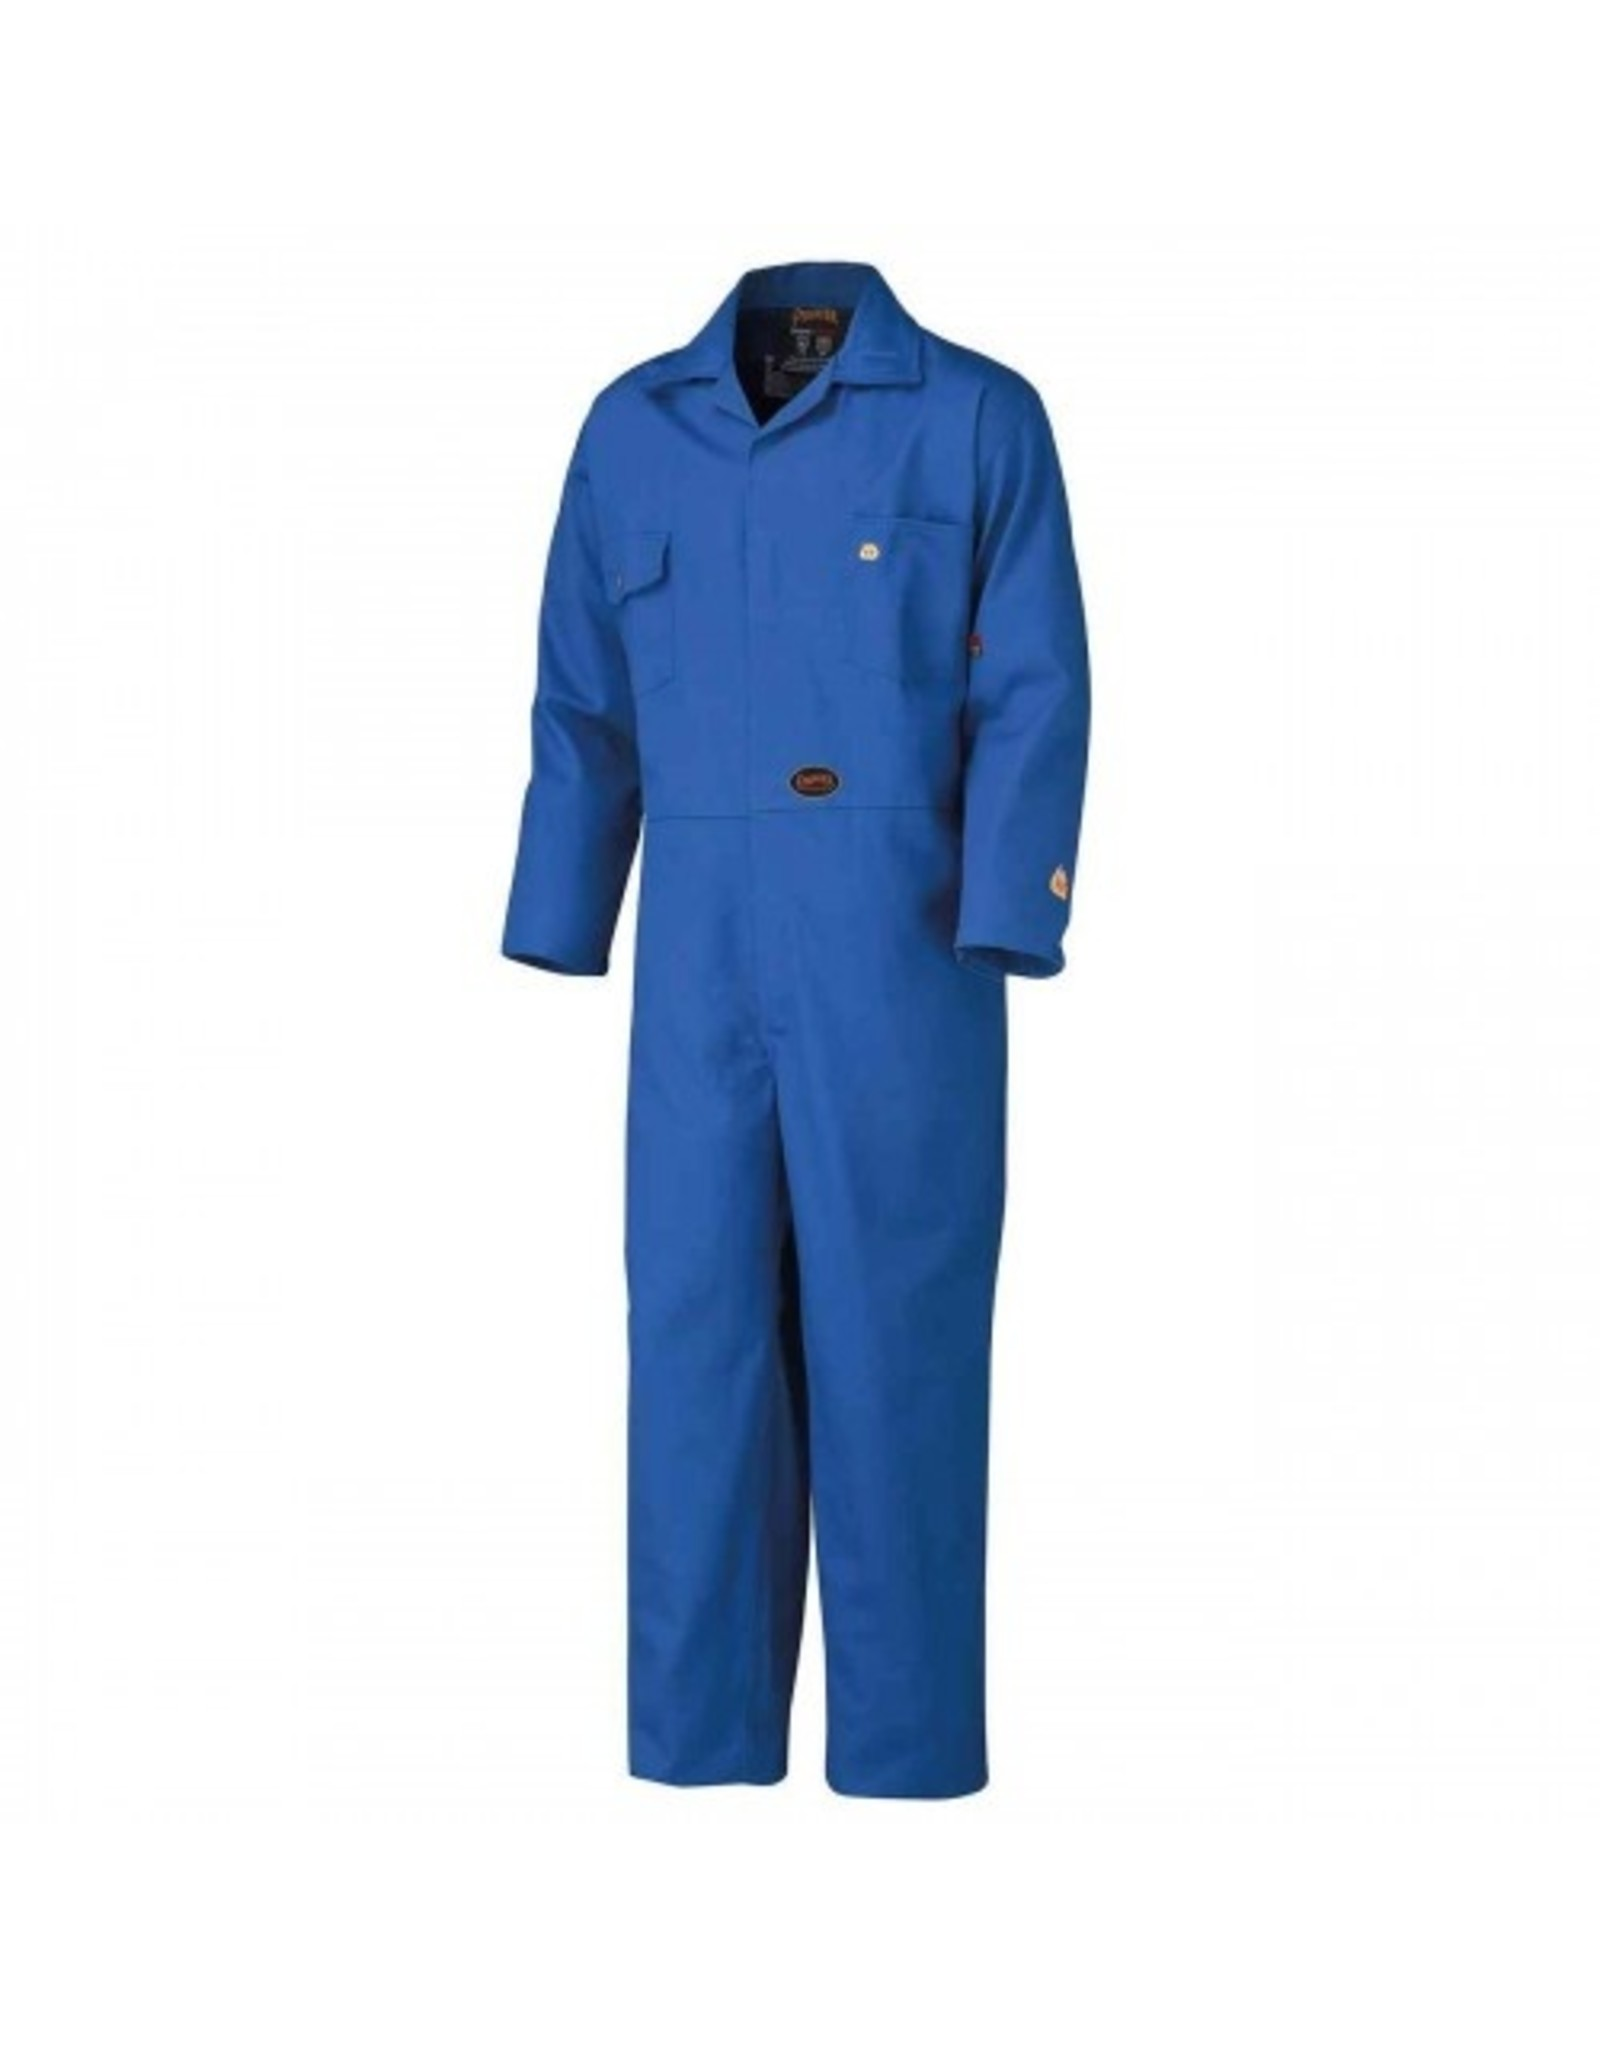 FR/ACR Rated 10ox Coveralls